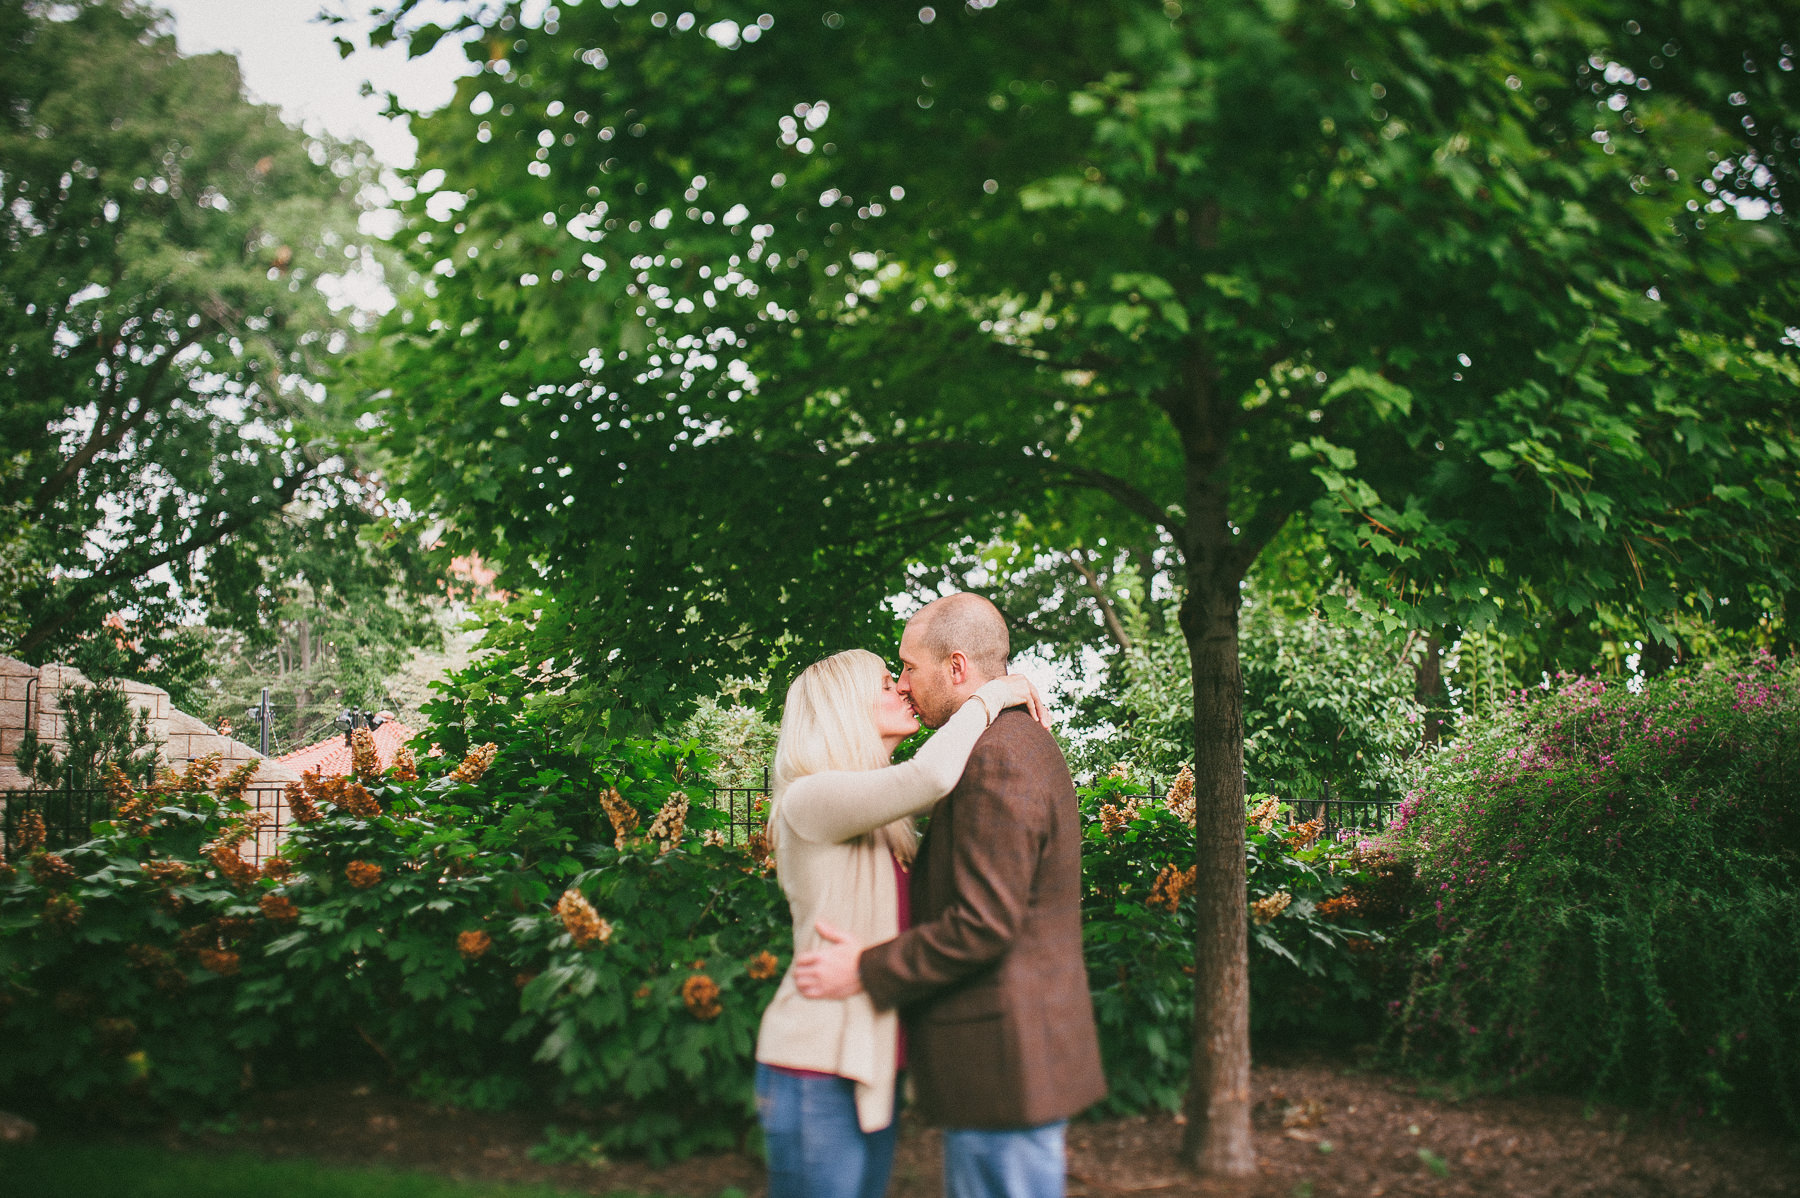 breighton-and-basette-photography-copyrighted-image-blog-emily-and-dave-engagement-006.jpg